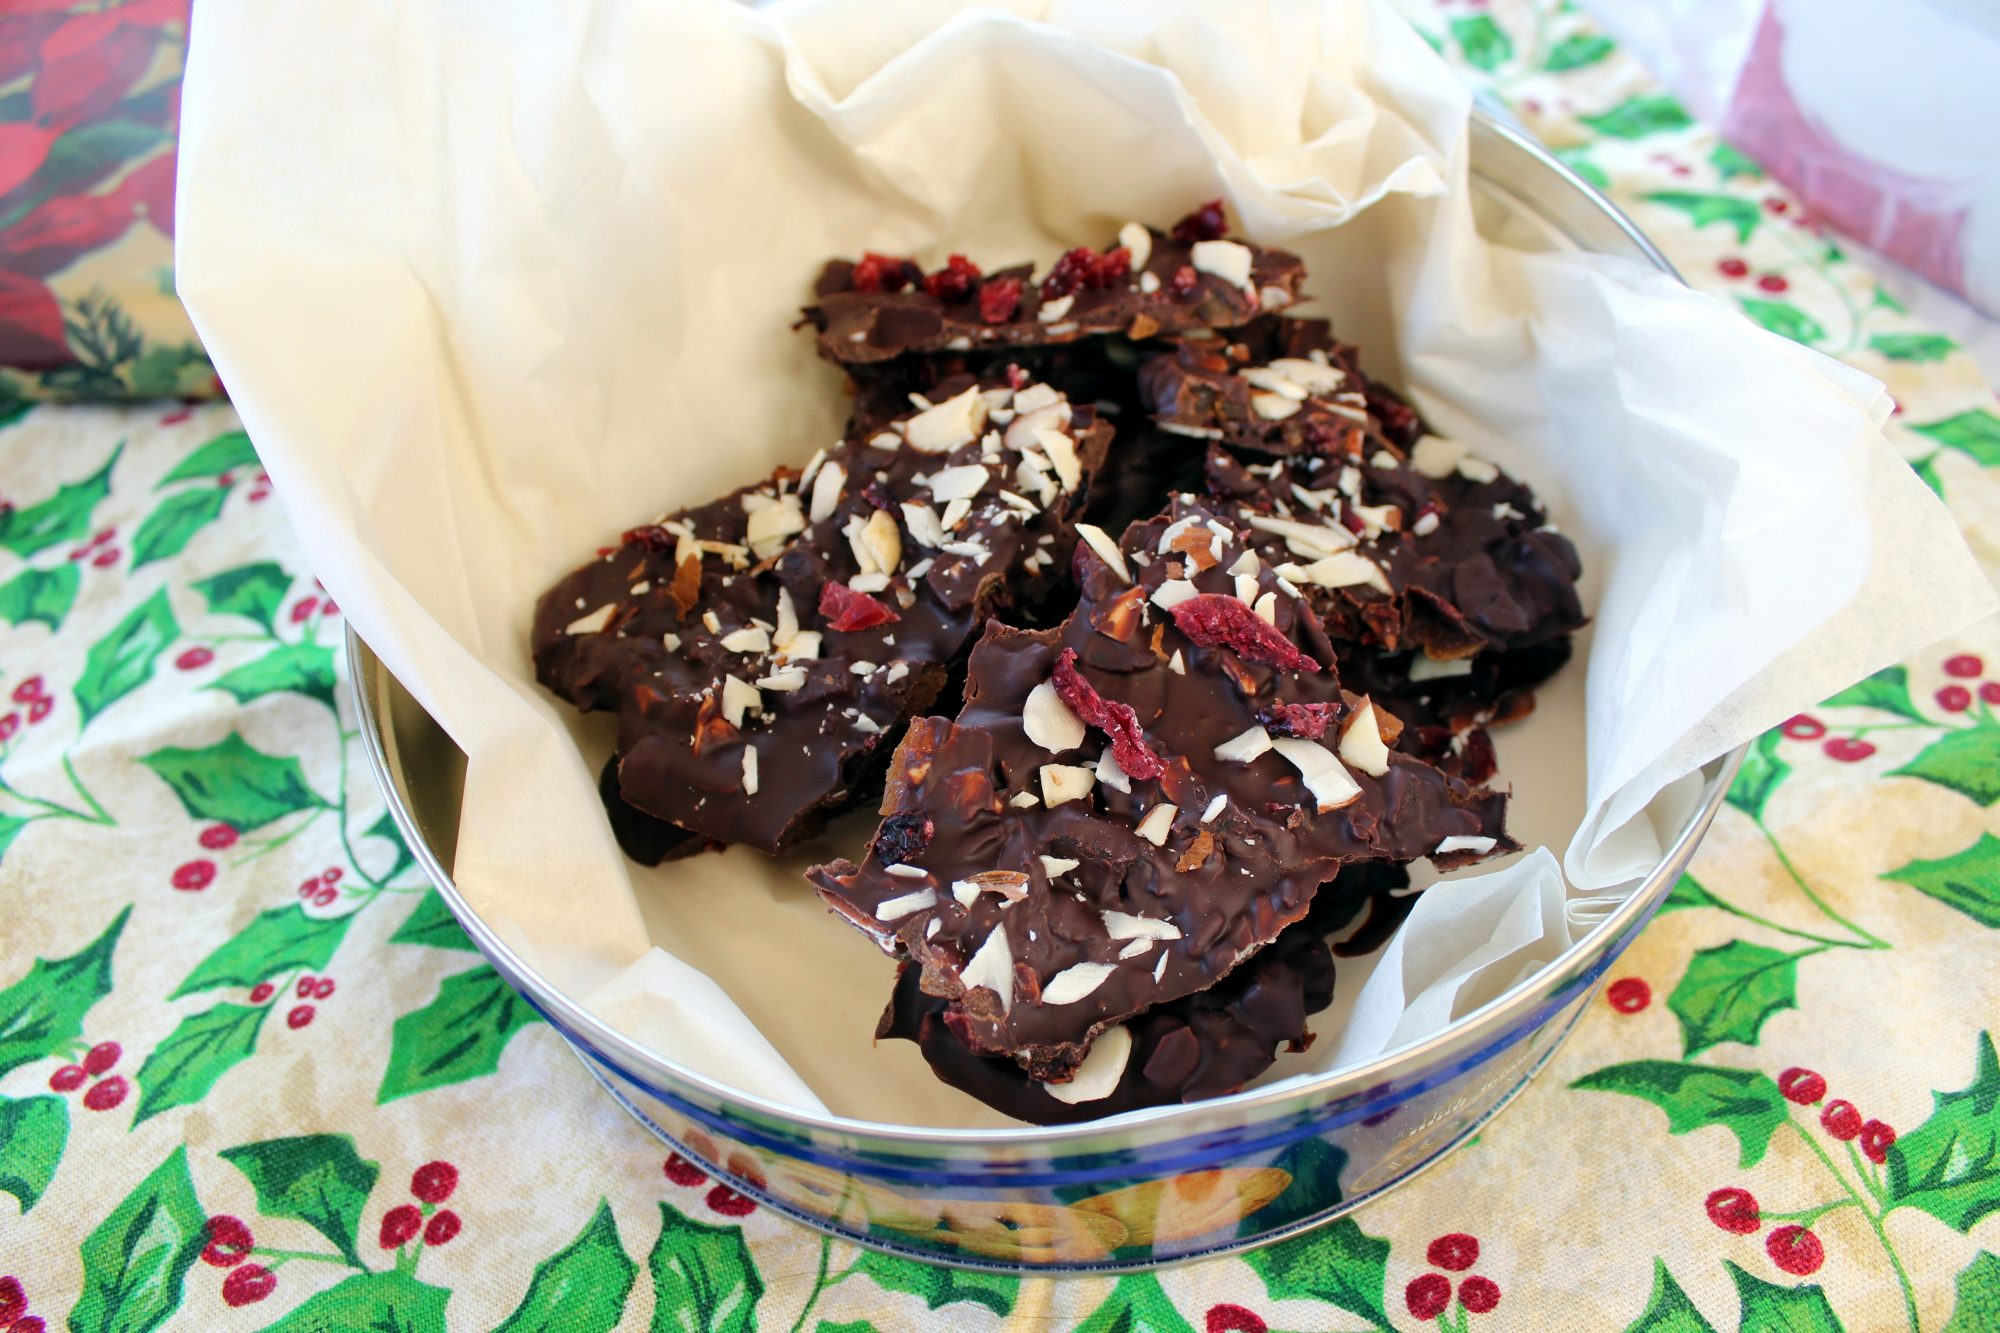 chocolate bark candy with almonds, dried cranberries, and dried apricots in a gift tin